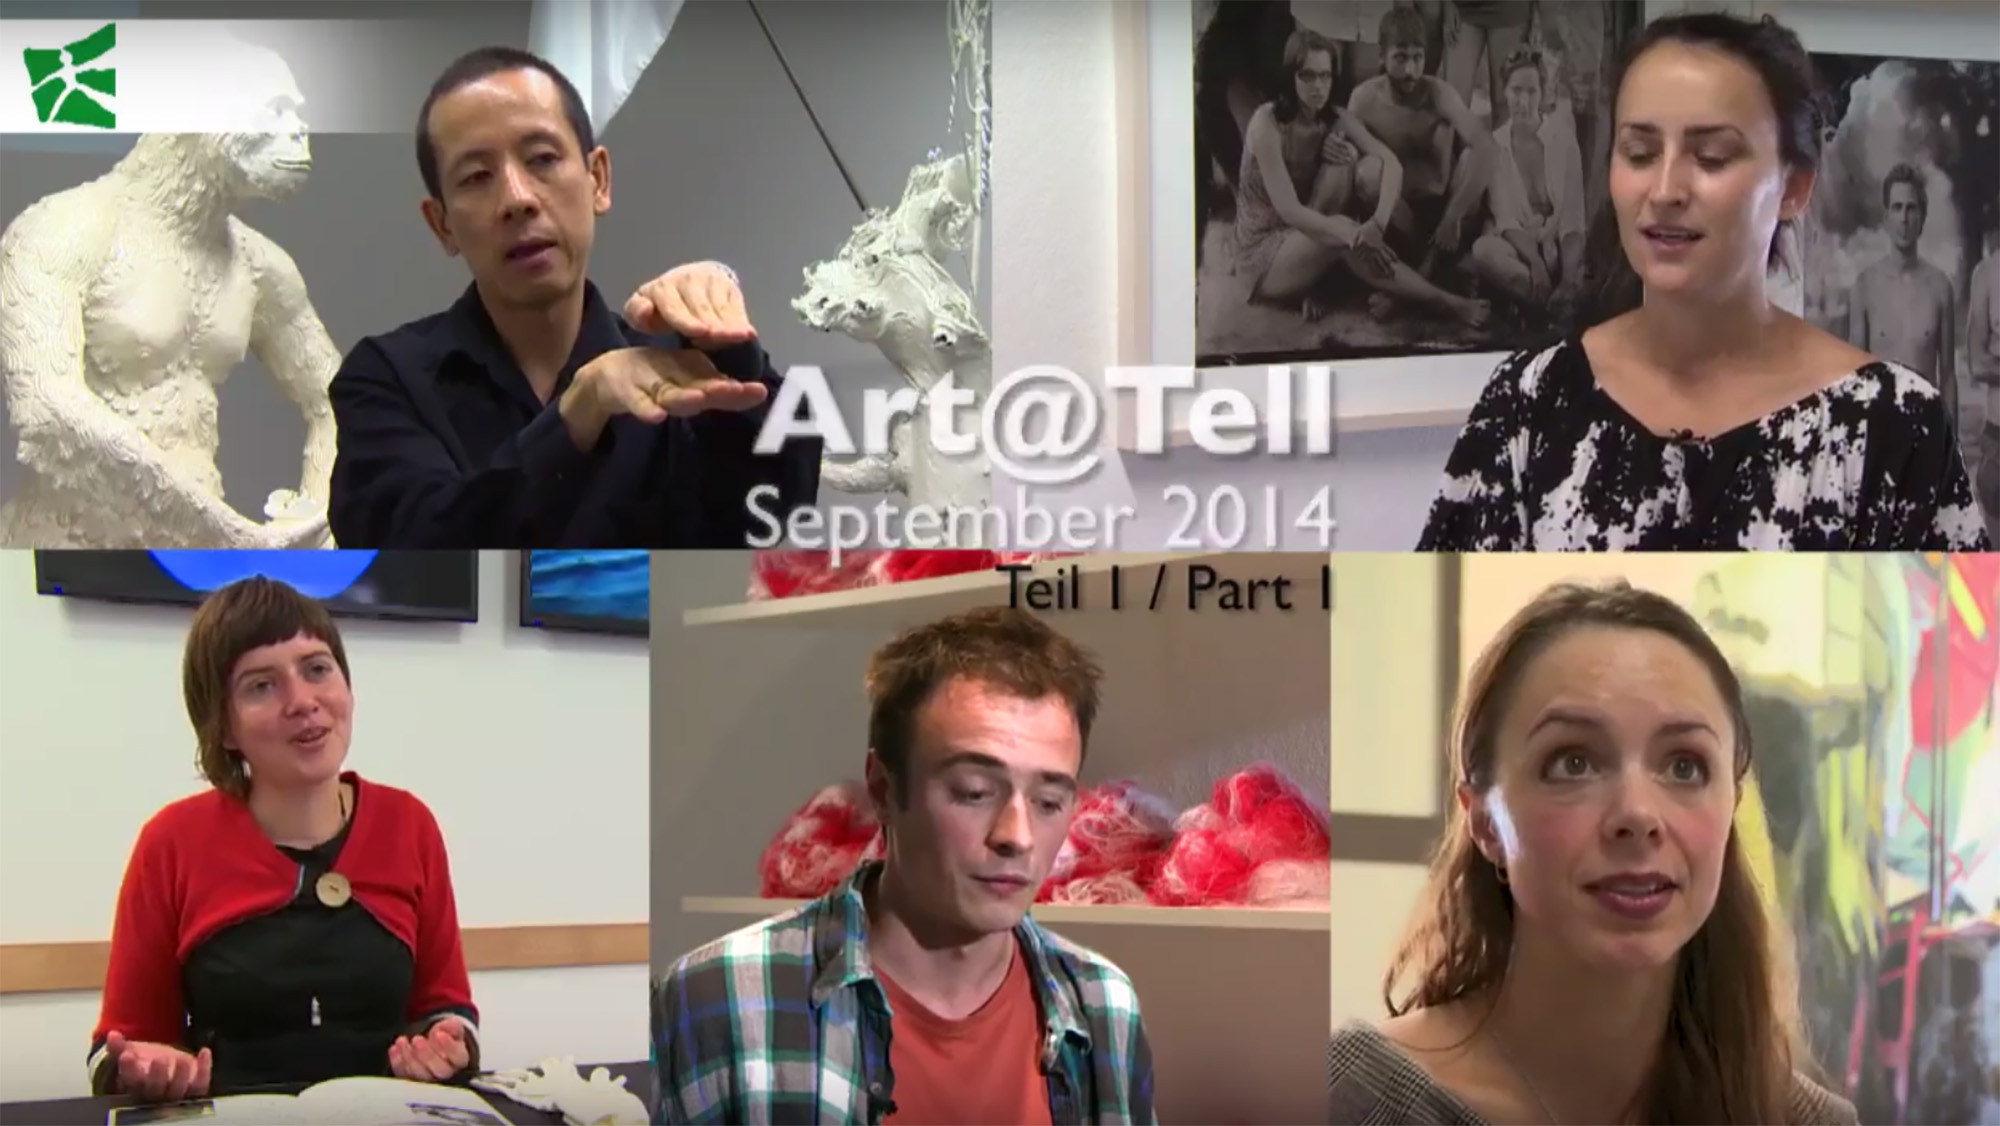 art at tell, video 2014 part 1